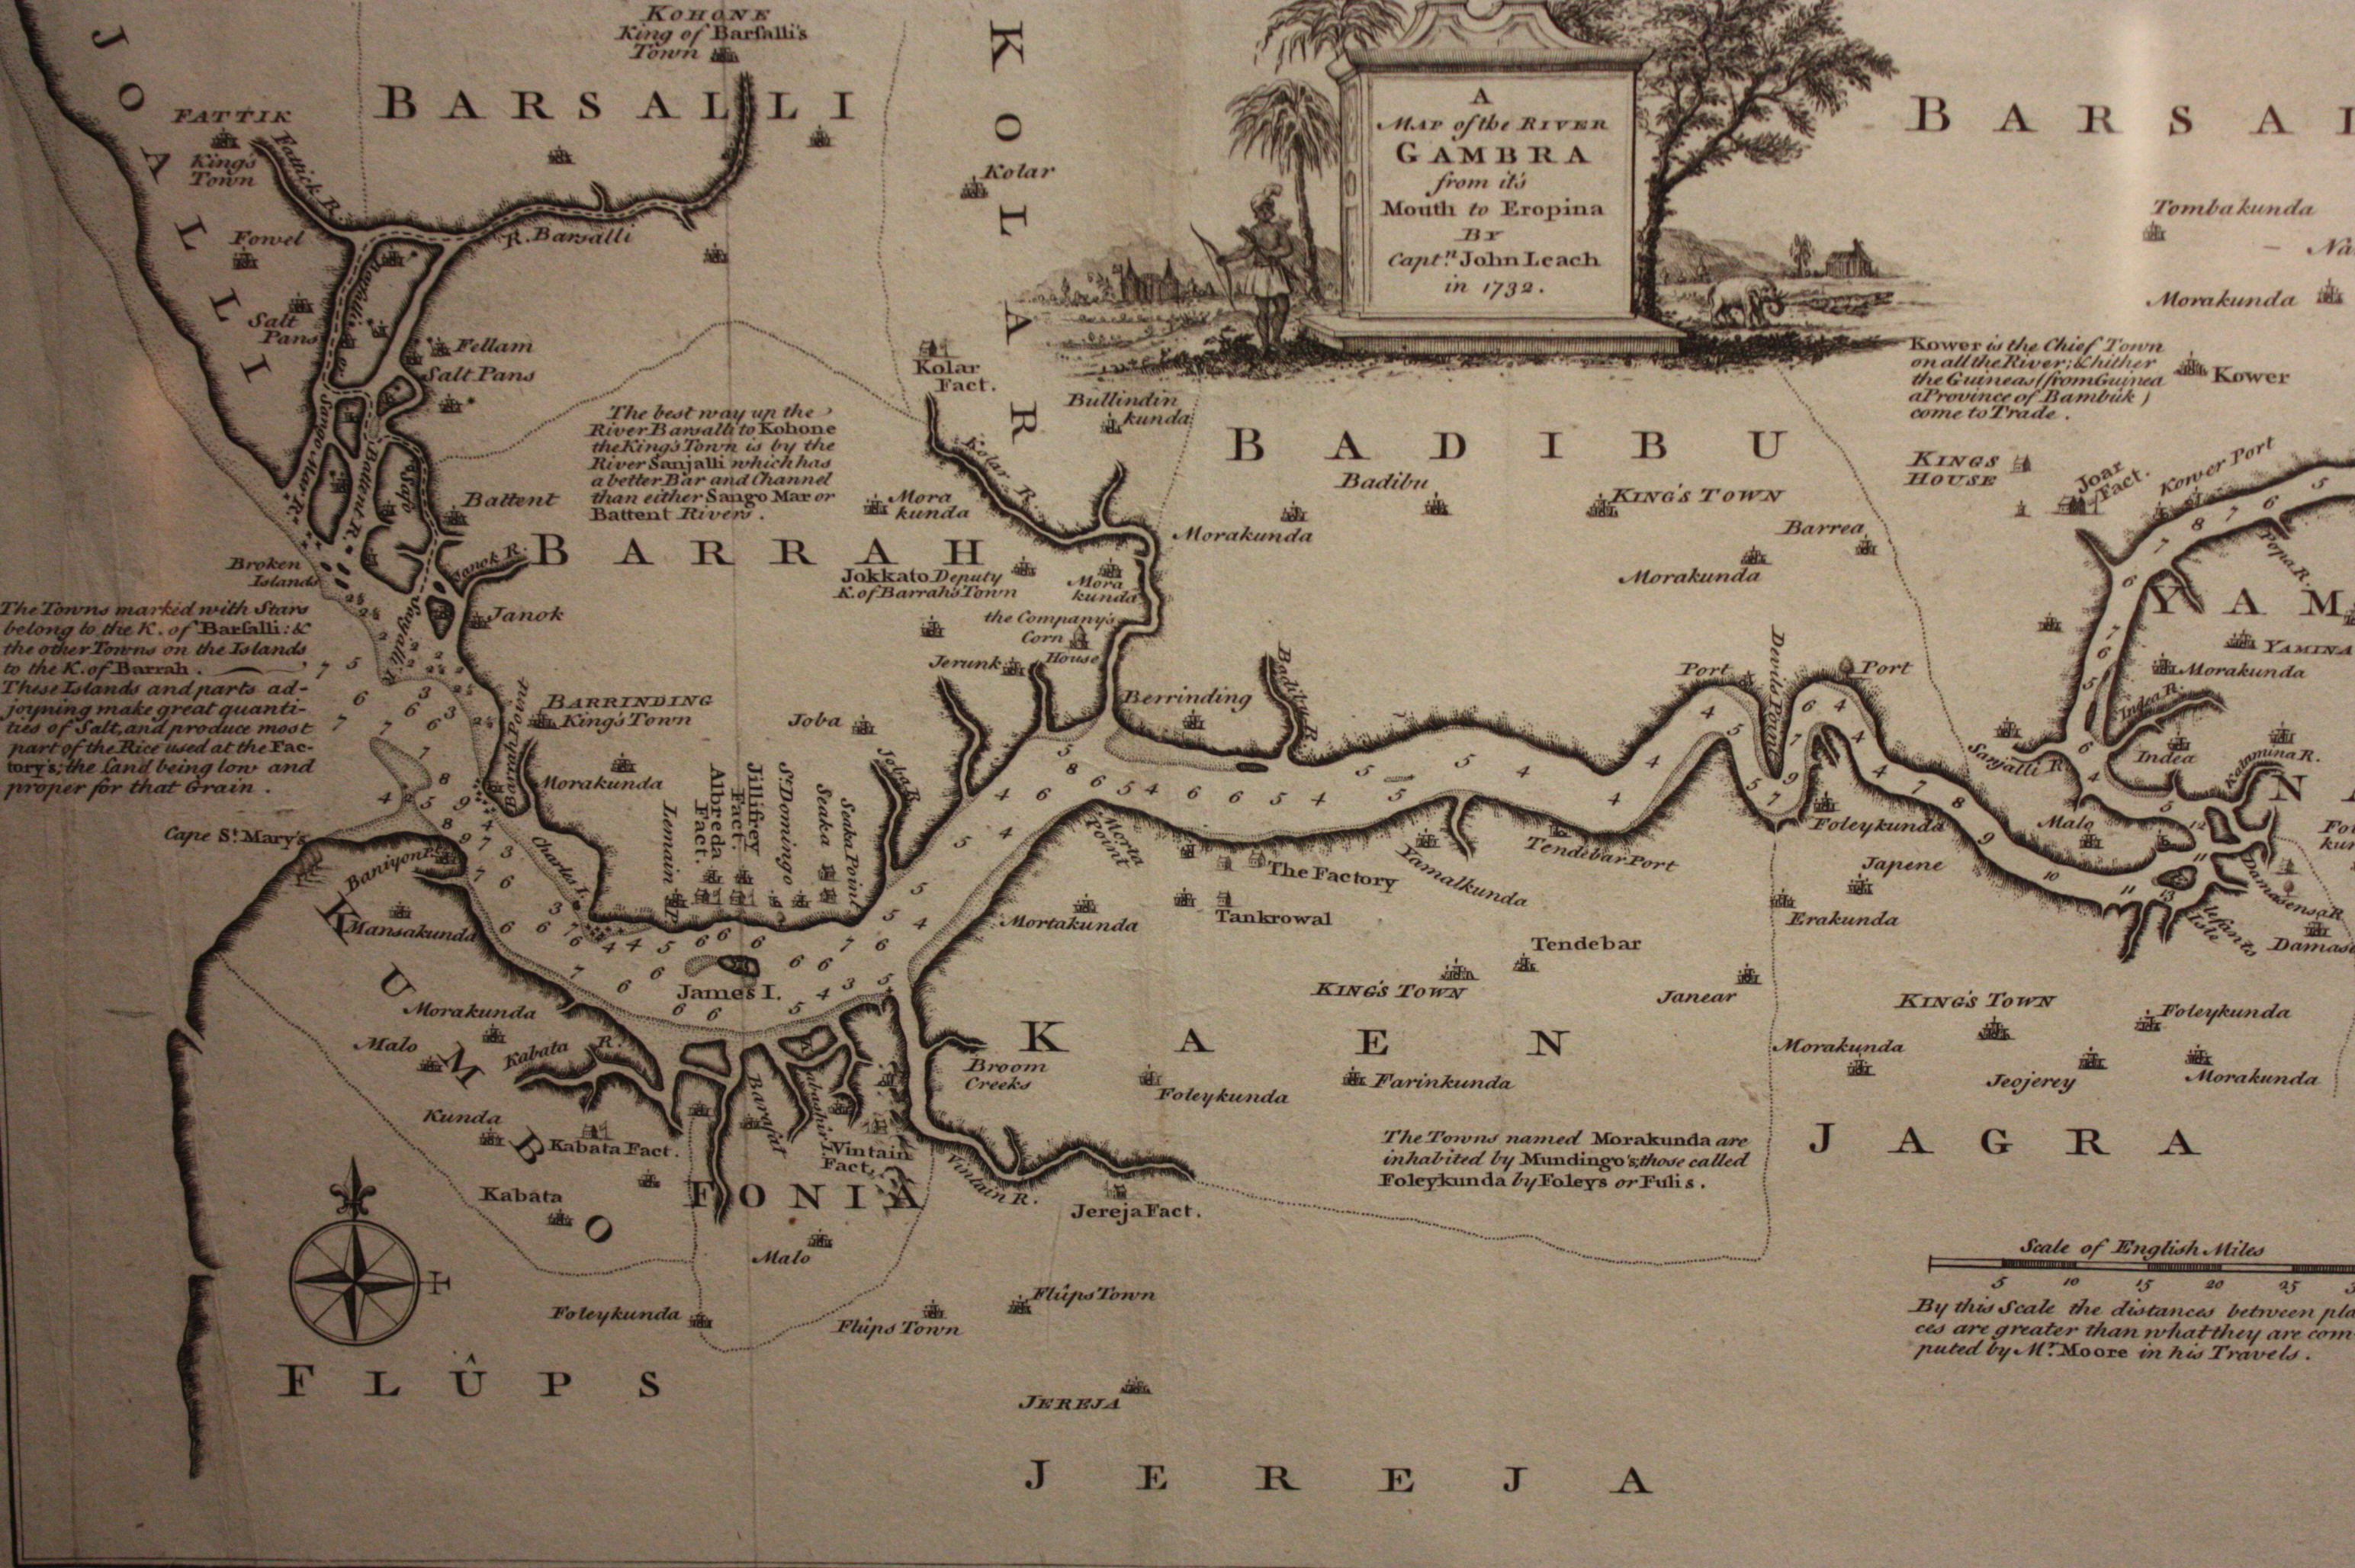 File:Map of the River Gambra (now the Gambia) 1732.JPG